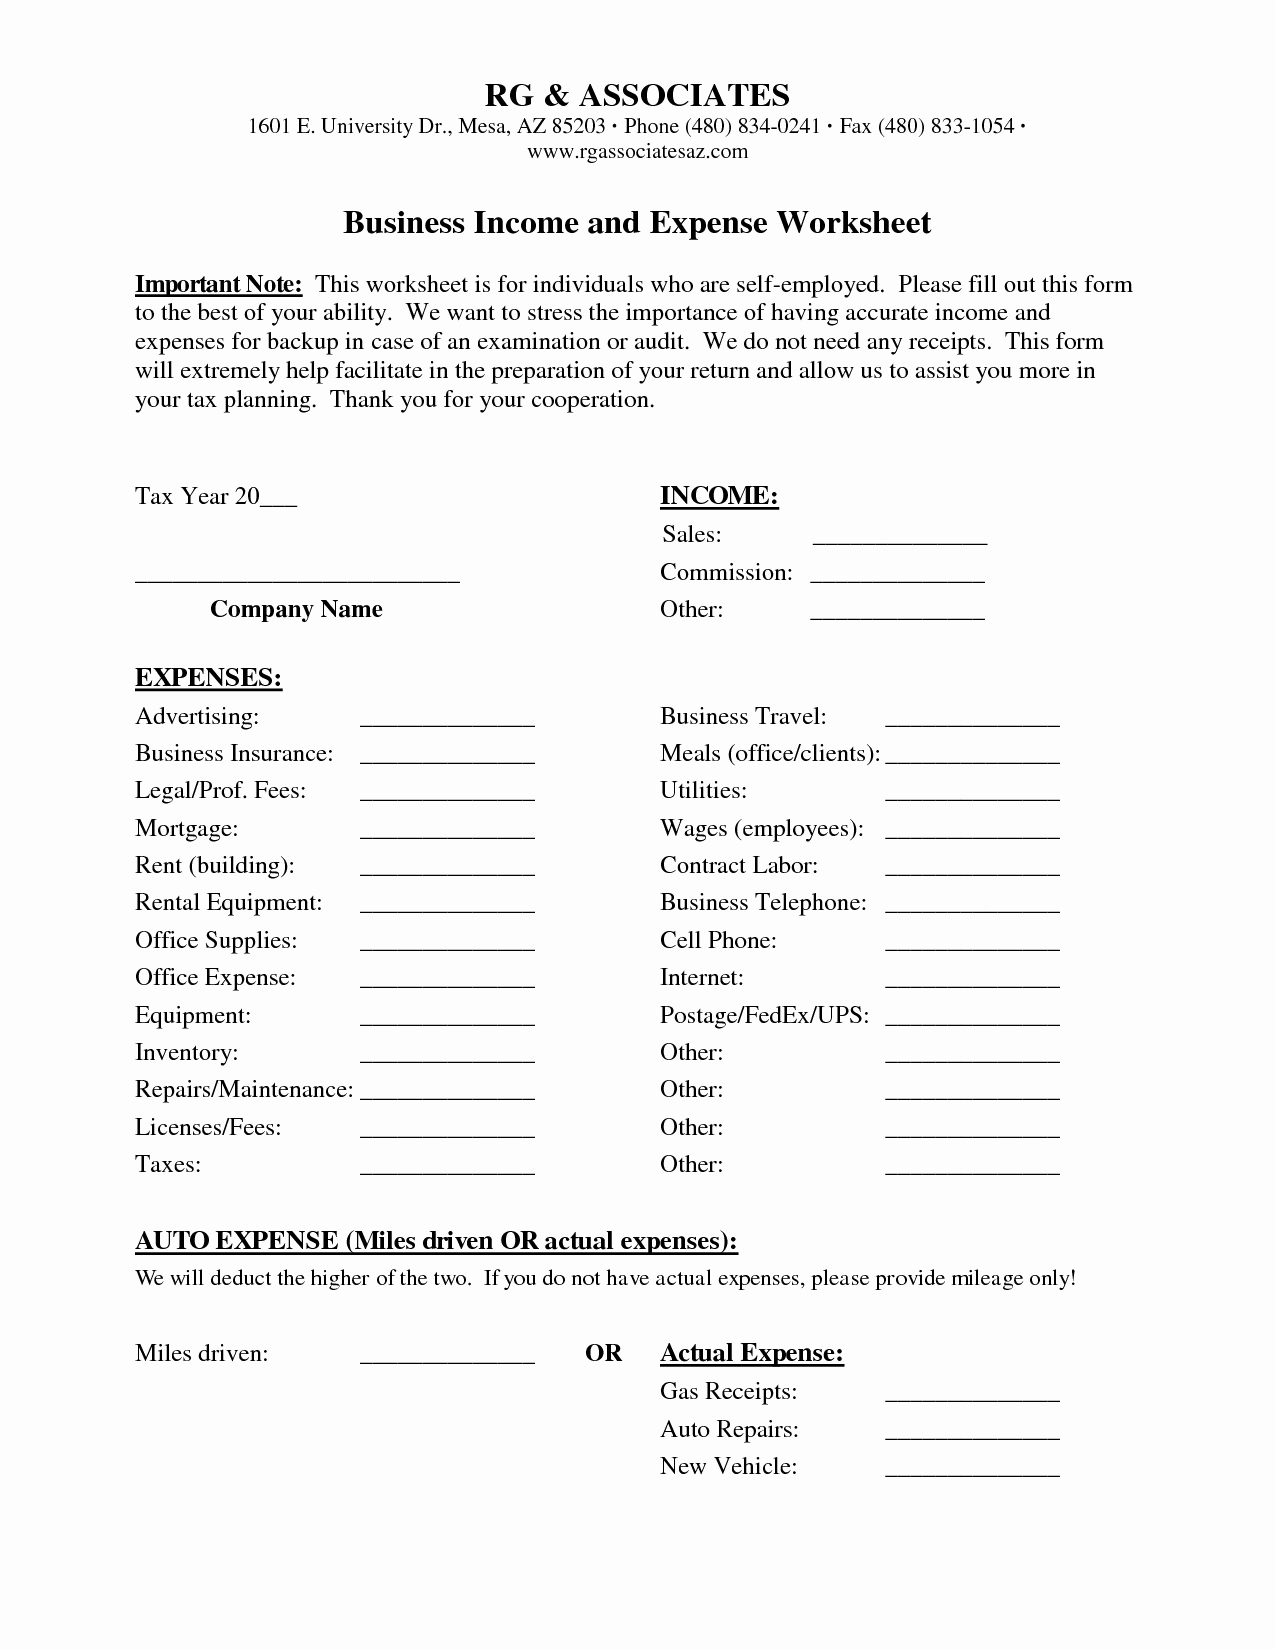 Monthly Income and Expense Worksheet Elegant Printable Monthly In E and Expense Worksheet 8 Best